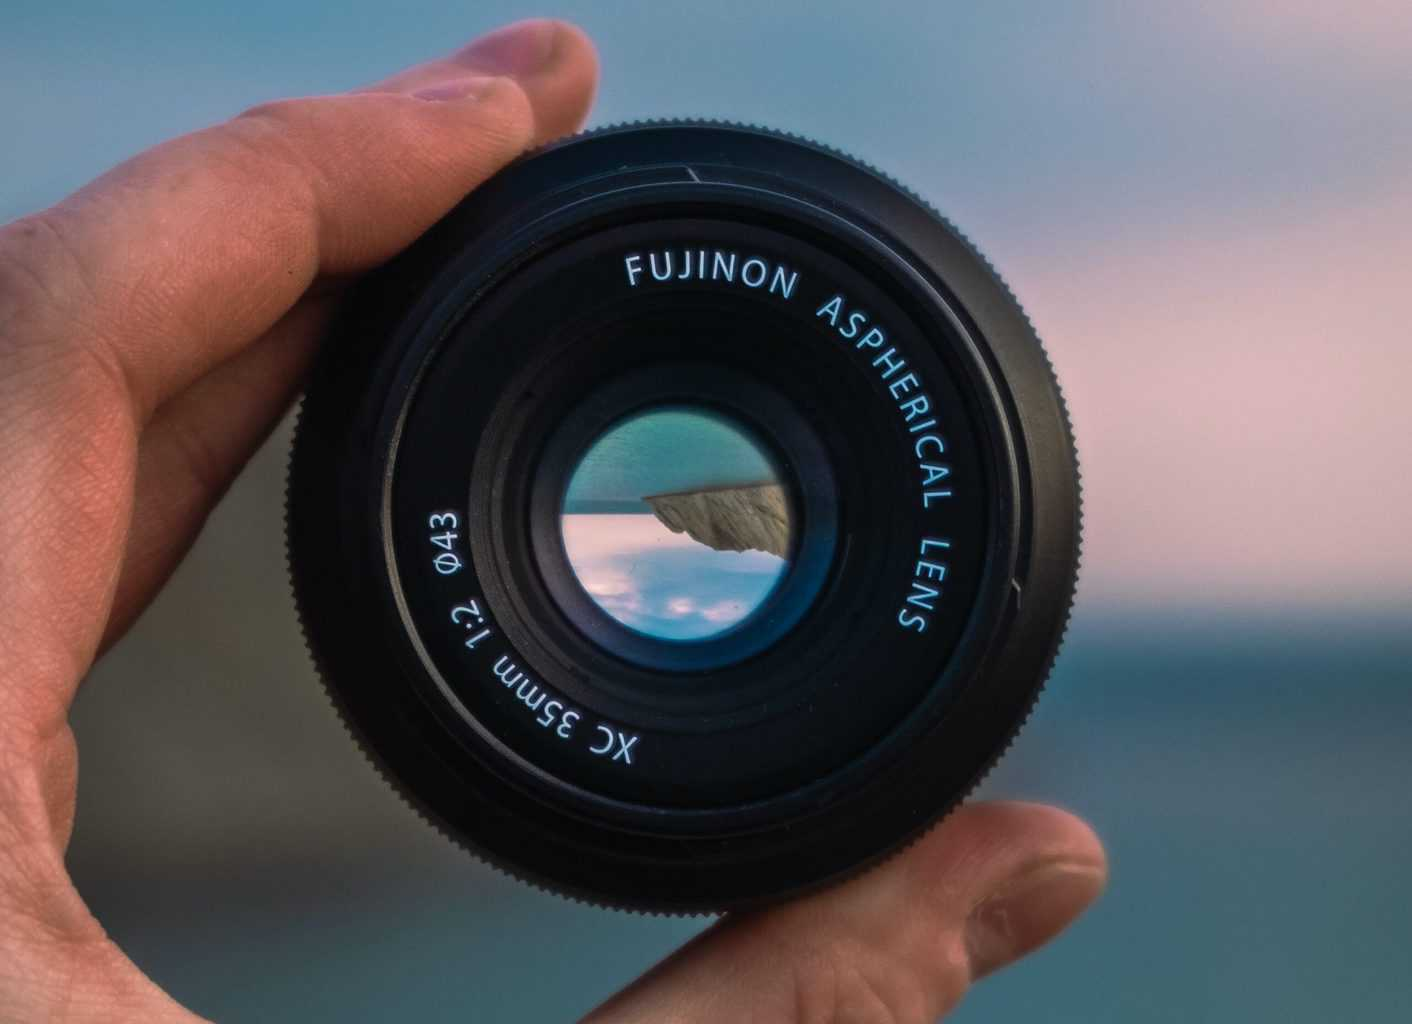 A 35mm lens being held with a blur landscape background